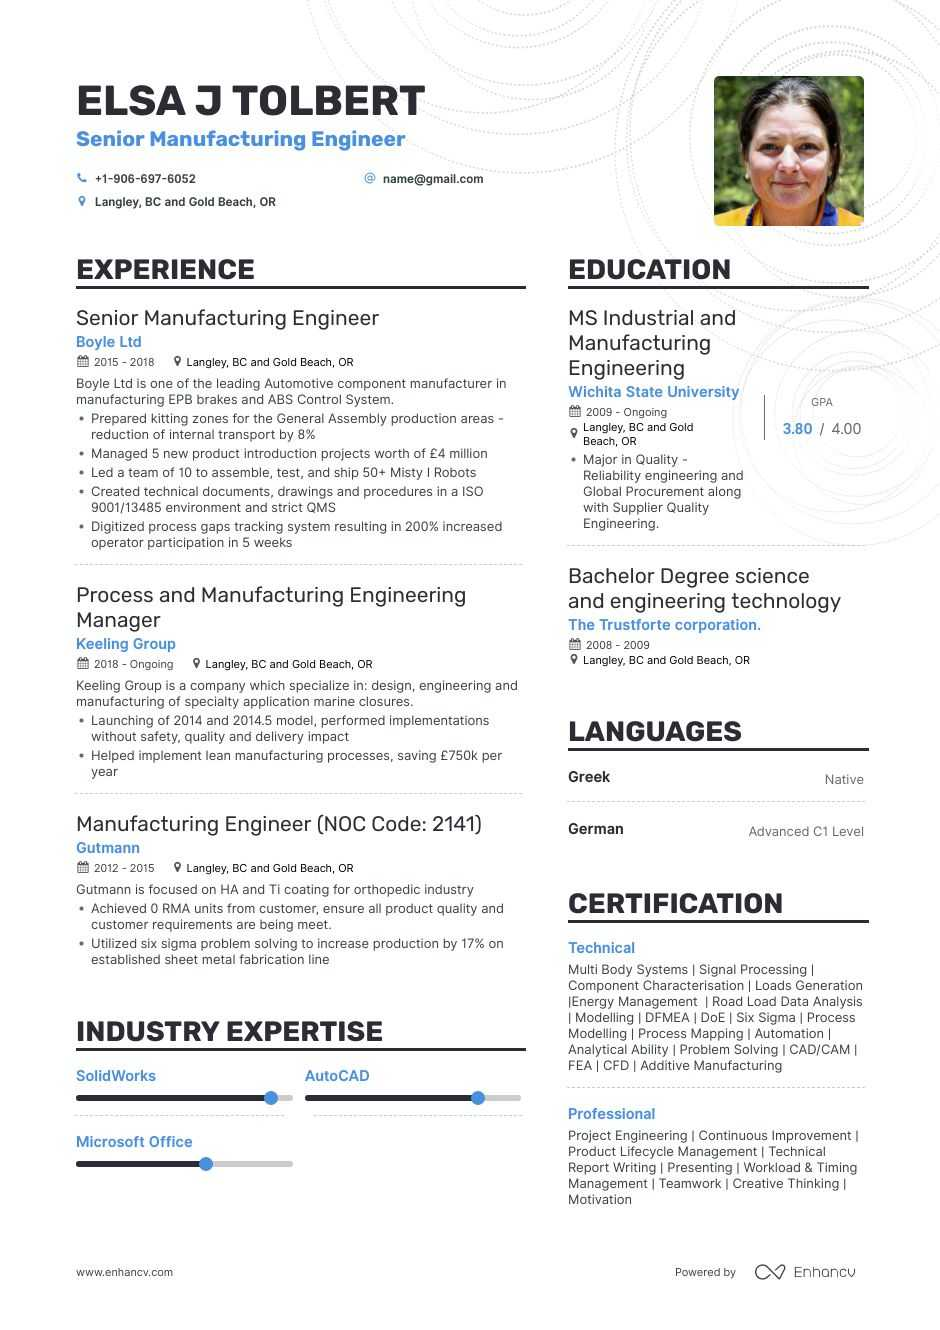 manufacturing engineer resume example for enhancv examples agent darwin now reviews mila Resume Manufacturing Resume Examples